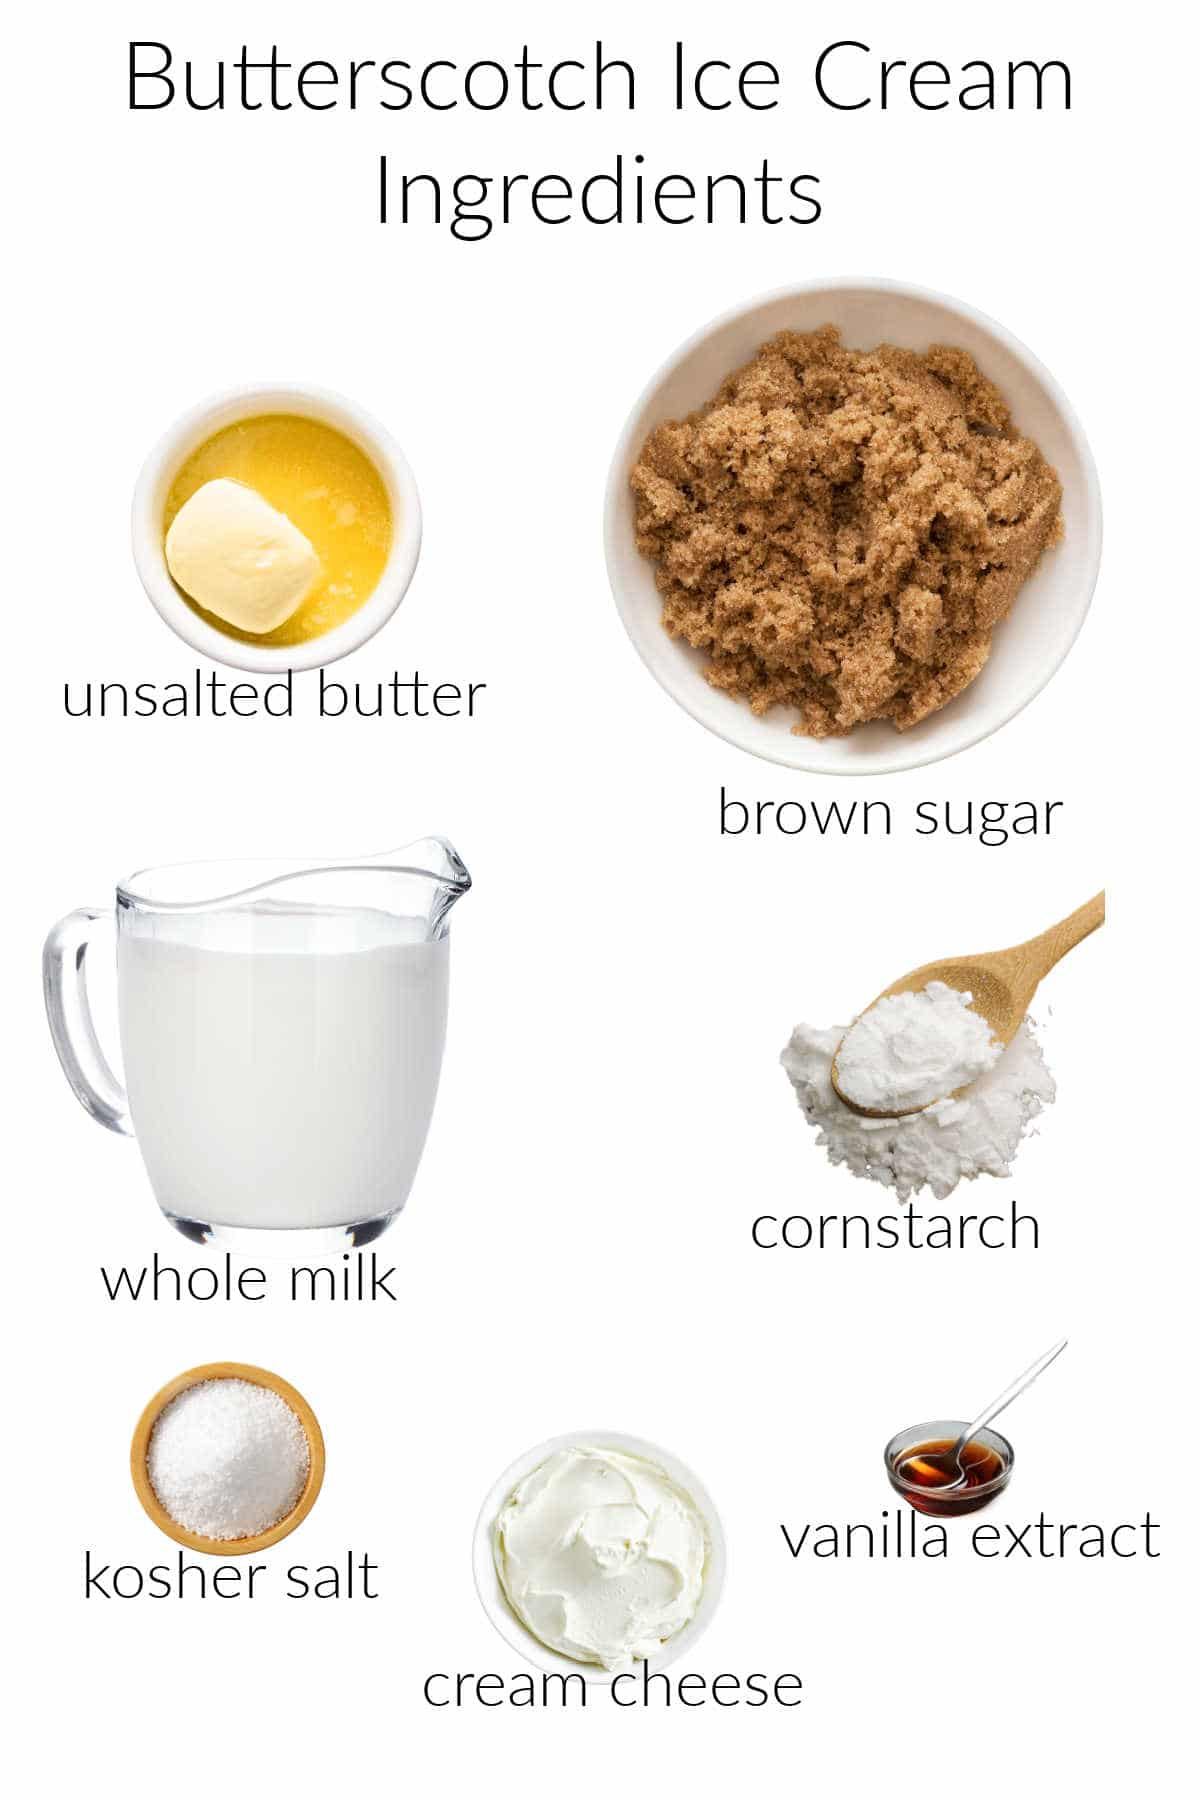 ingredients for making butterscotch ice cream